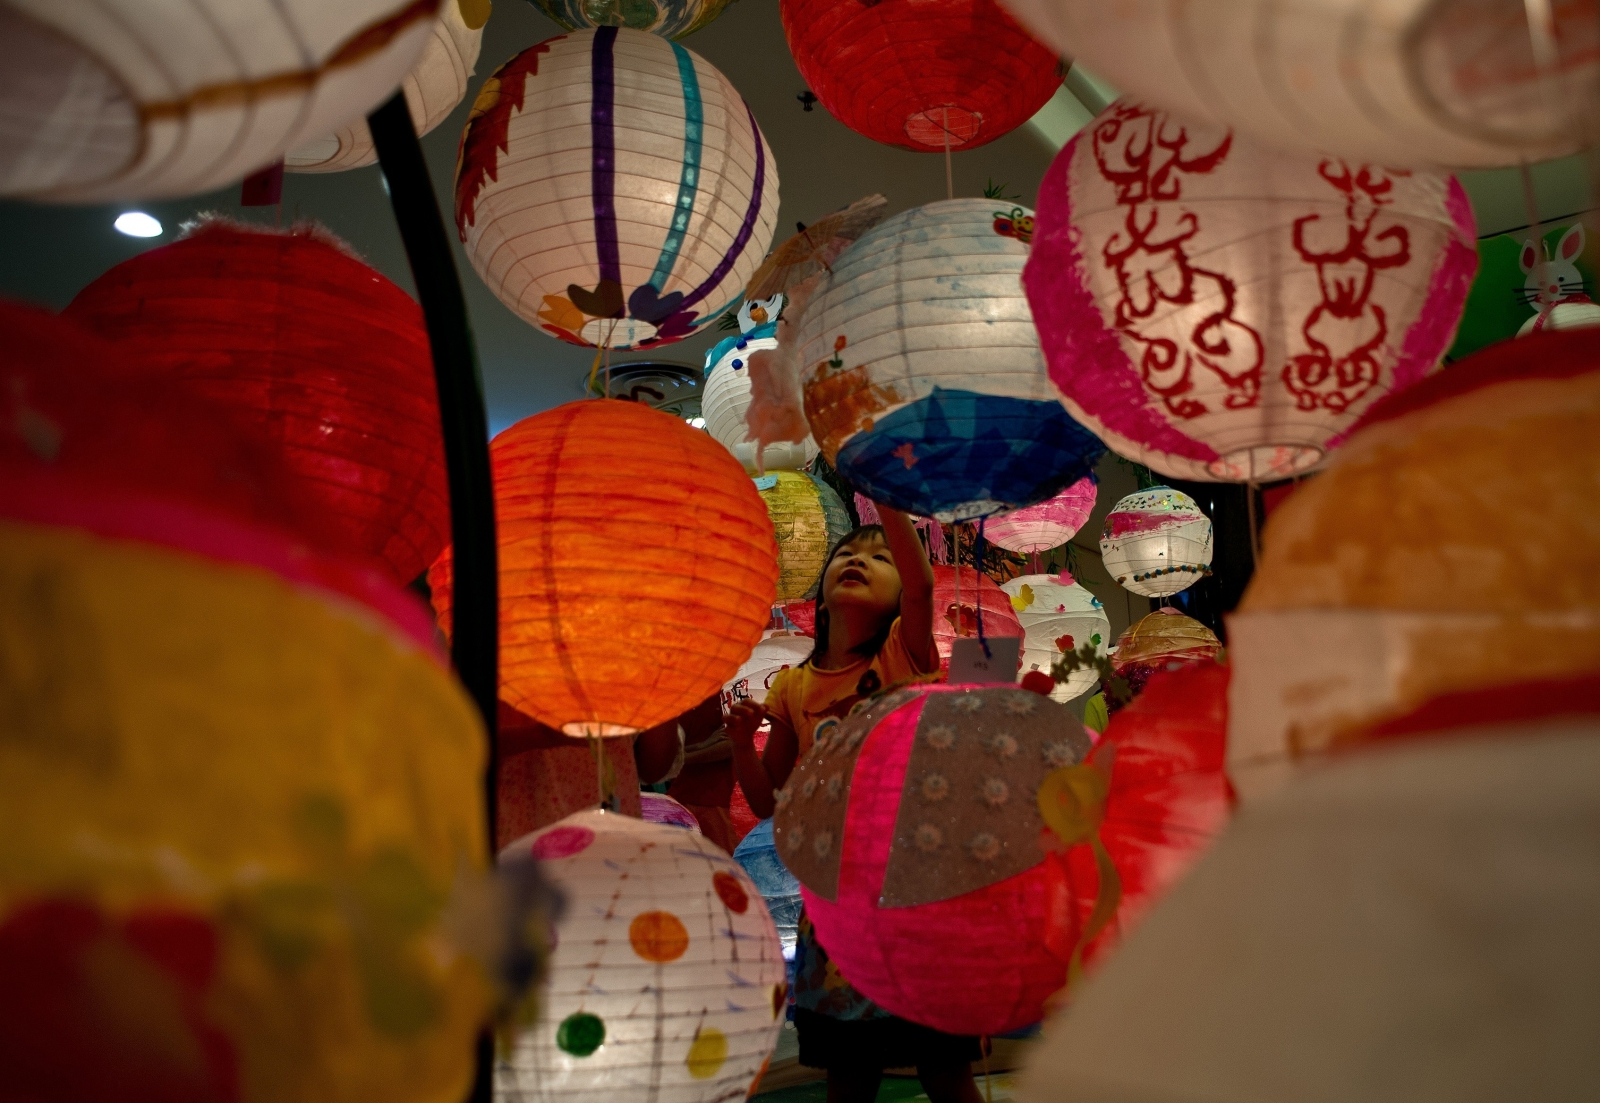 A child plays amongst multi-coloured paper lanterns put up to celebrate Mid-Autumn Festival in Malaysia